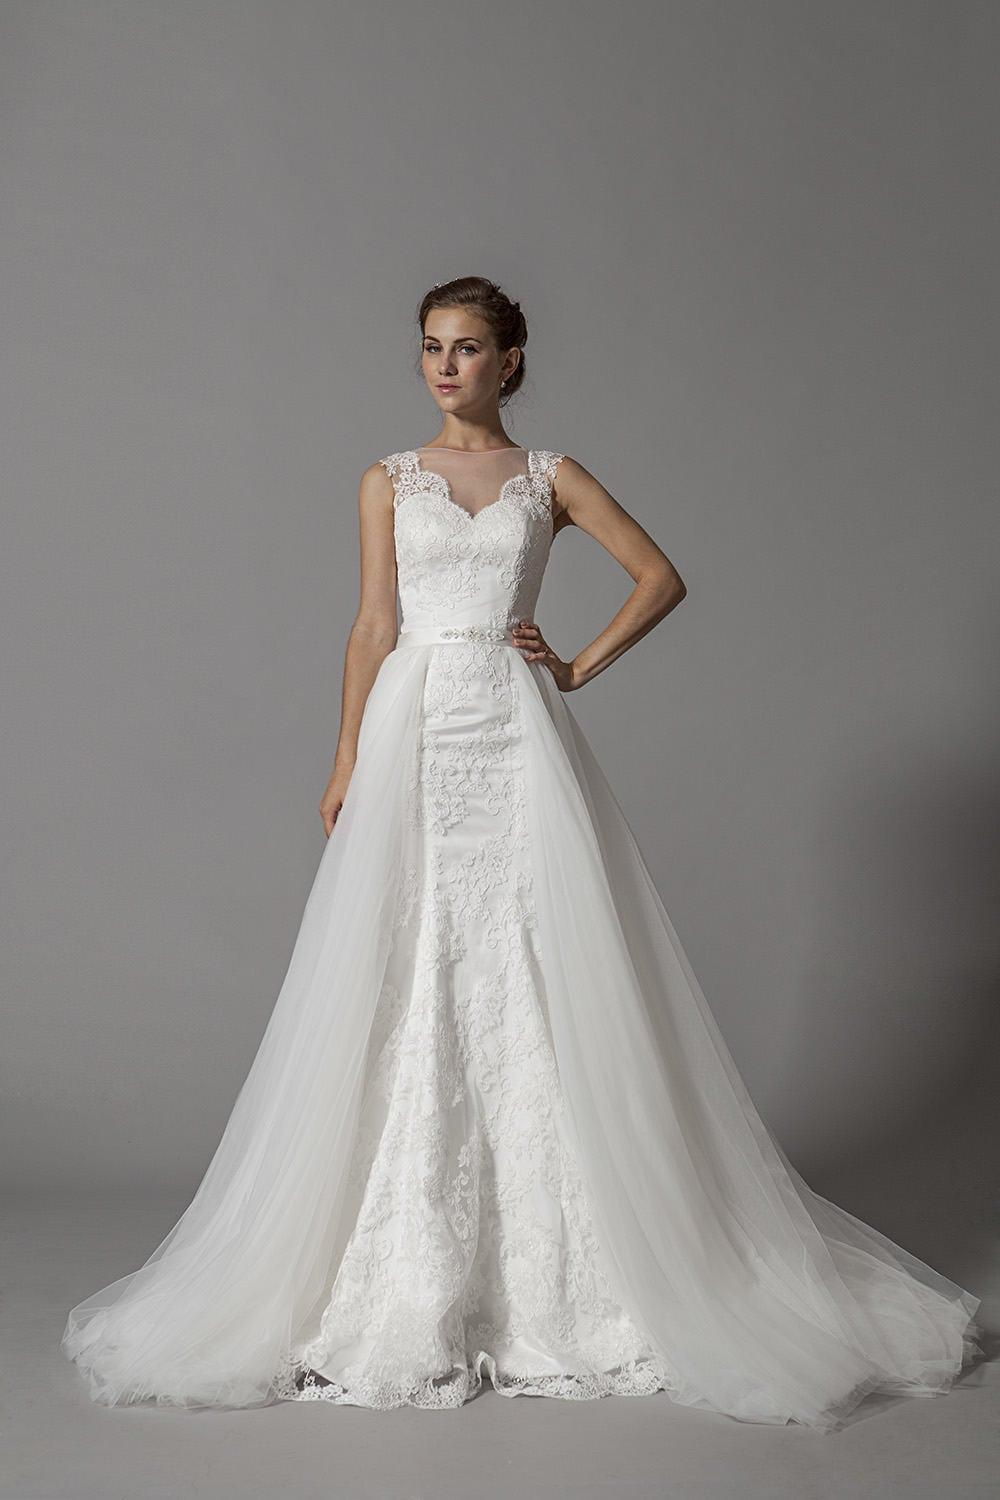 Detachable Train Wedding Dresses Darius Cordell Fashion Ltd